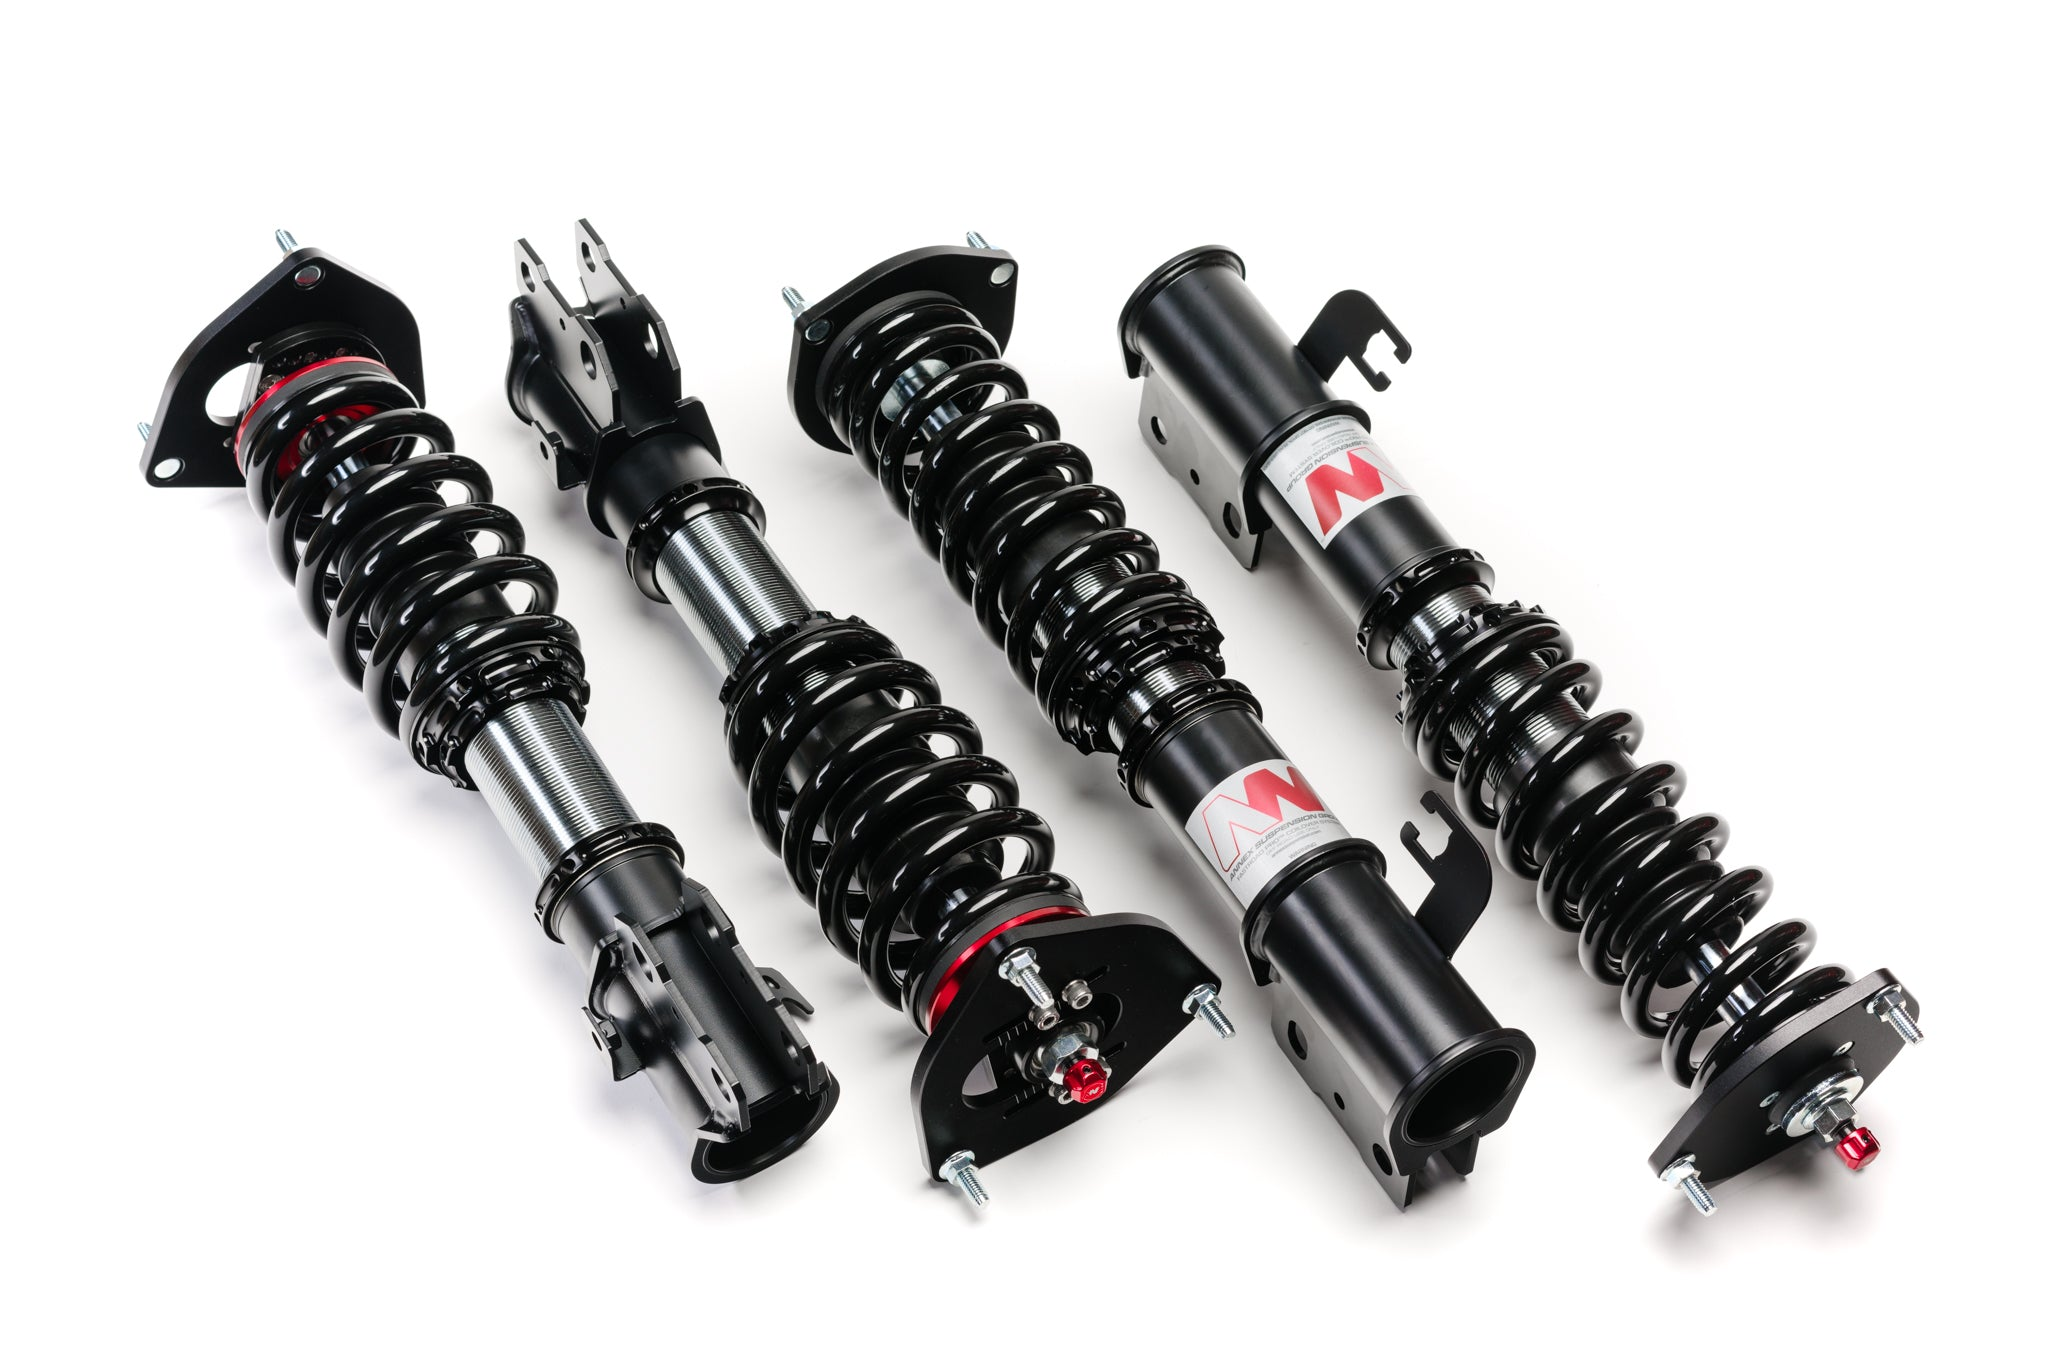 Annex Suspension Kits Fastroad Pro Coilovers Subaru 2005 Impreza WRX STI for Daily Driving (Street Driving and Track Comfort)